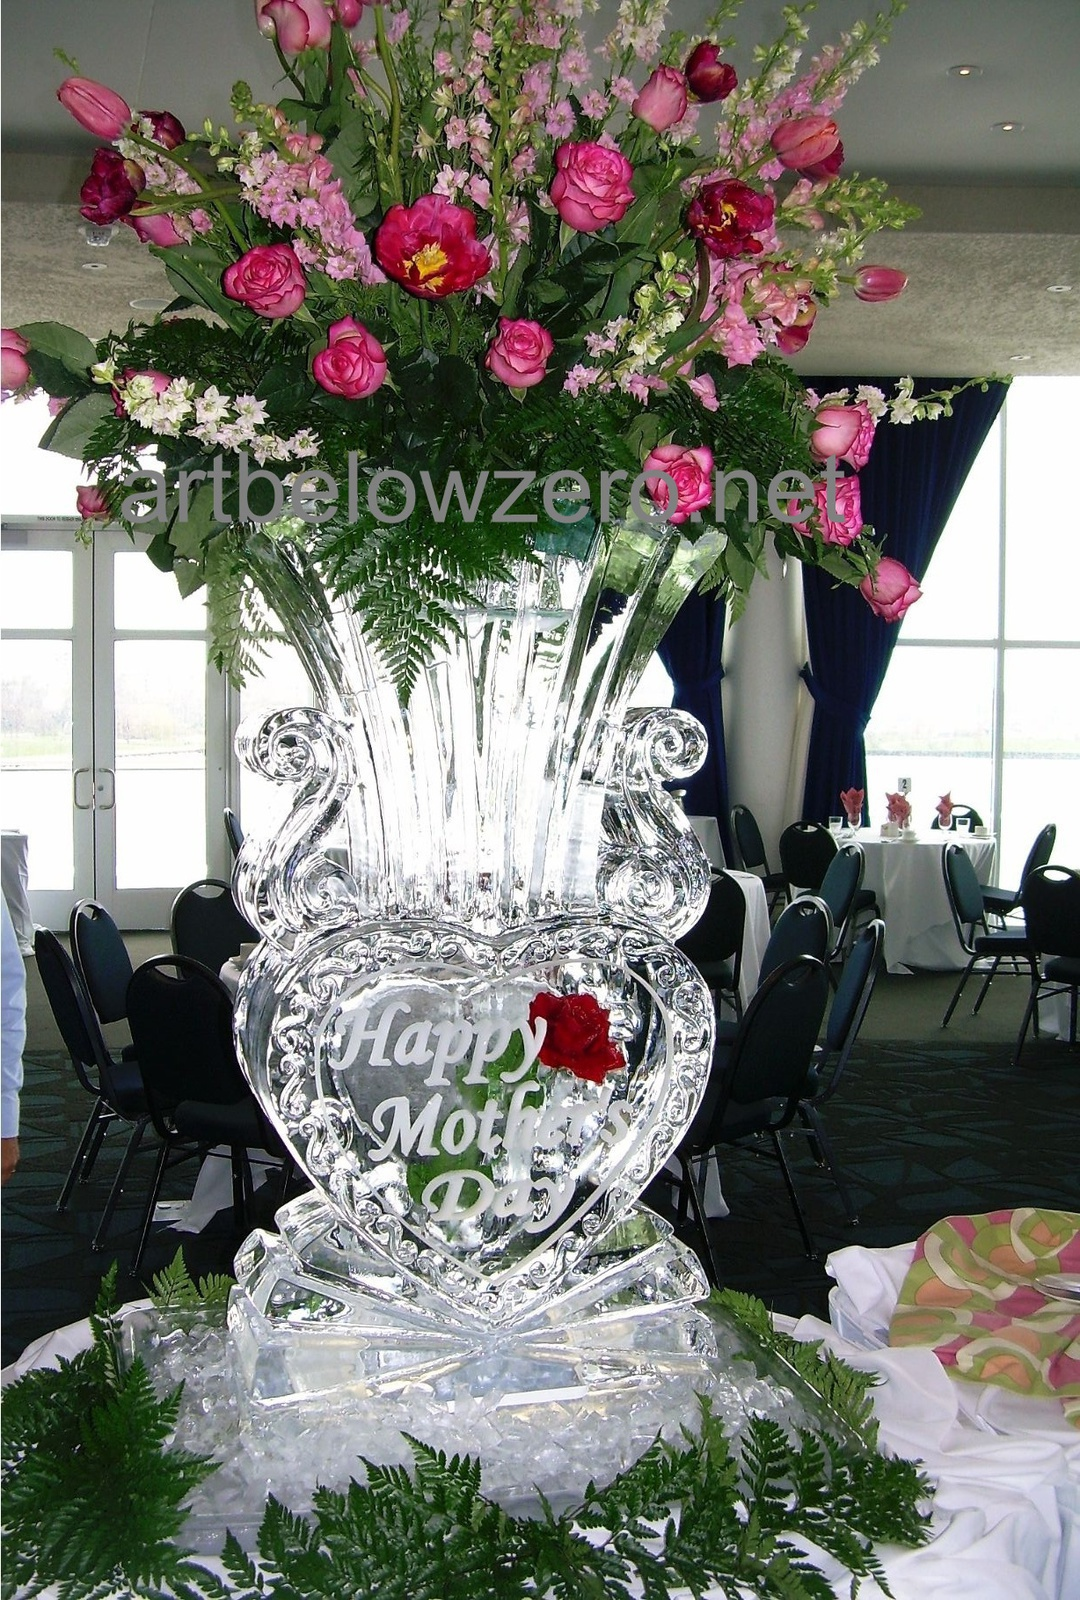 Mothers day ice sculptures by art below zero